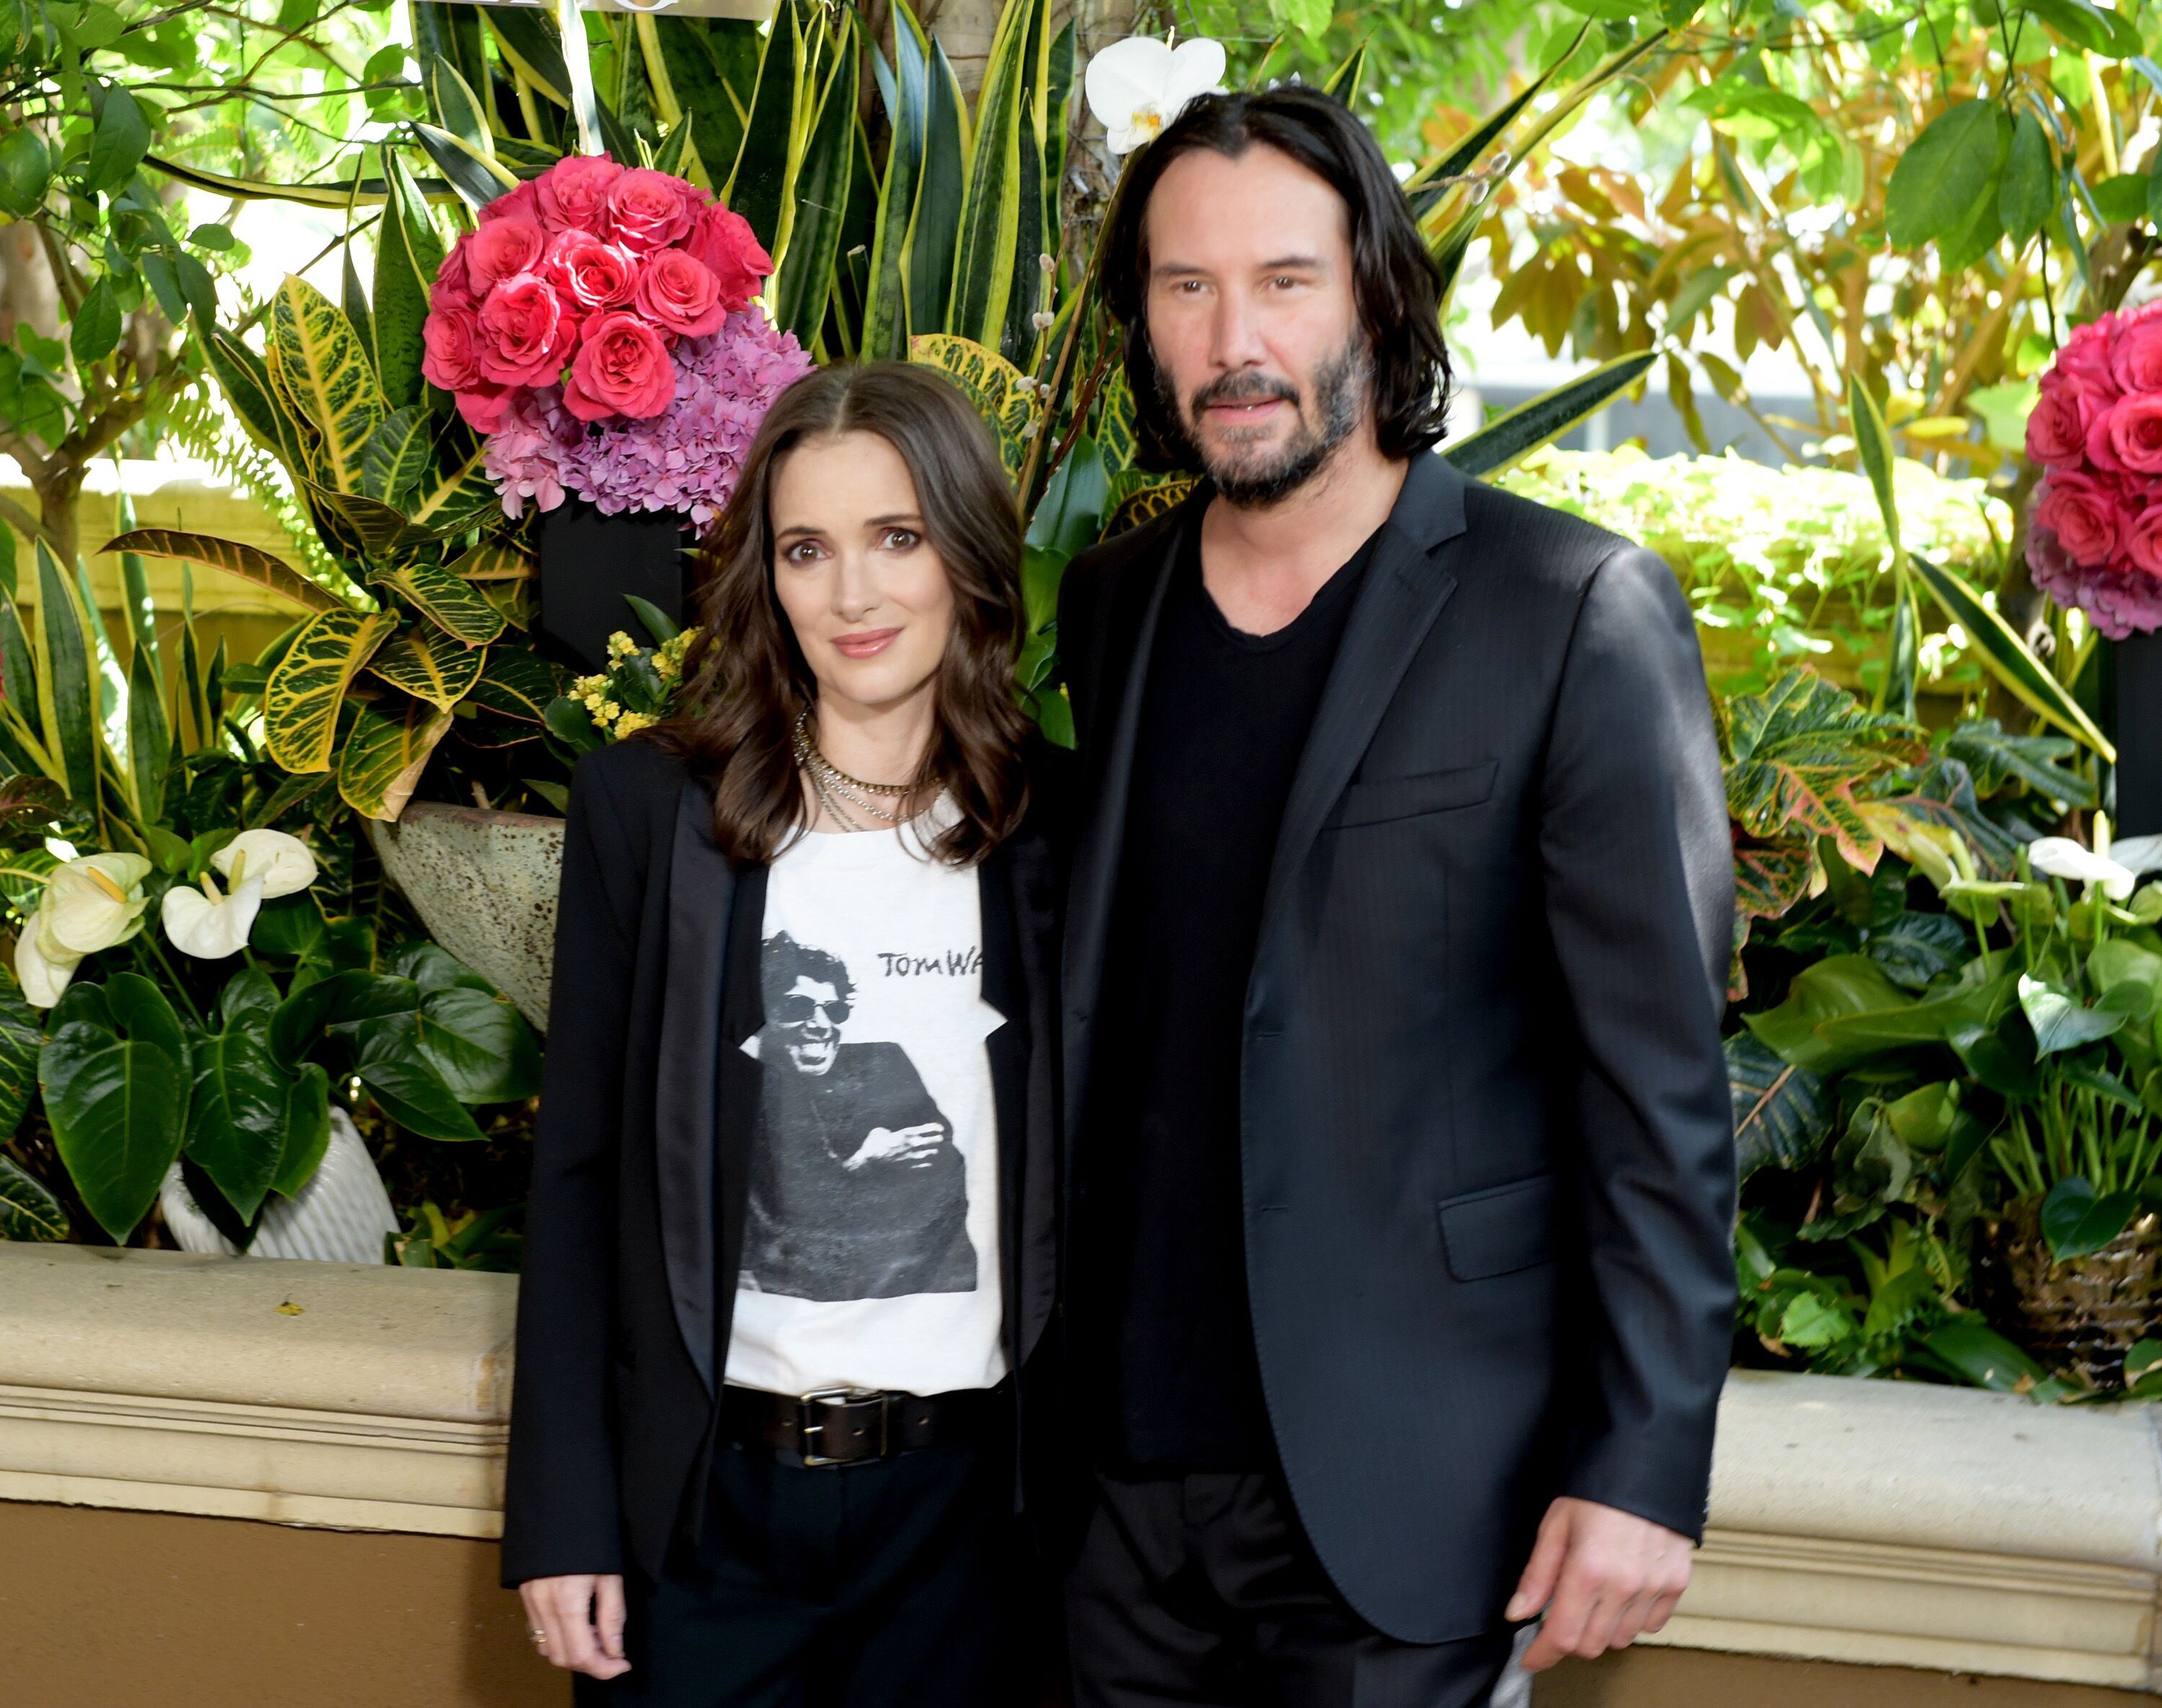 Keanu Reeves and Jennifer Syme. | Source: Getty Images